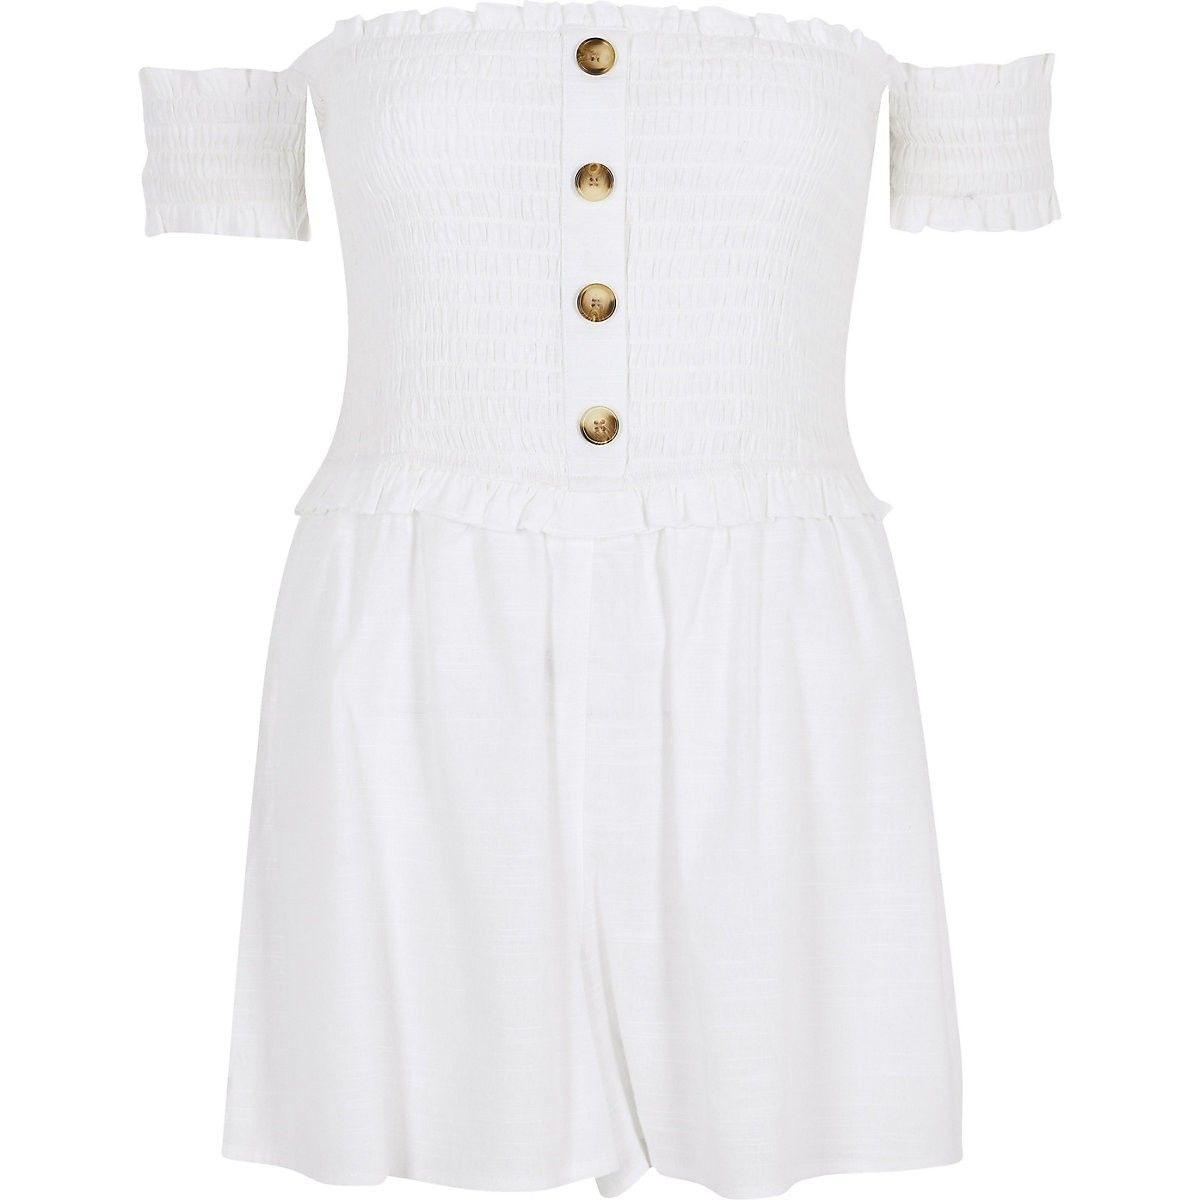 d49e7ee2a19b1 White bardot beach playsuit | Rompers in 2019 | Beach playsuit ...